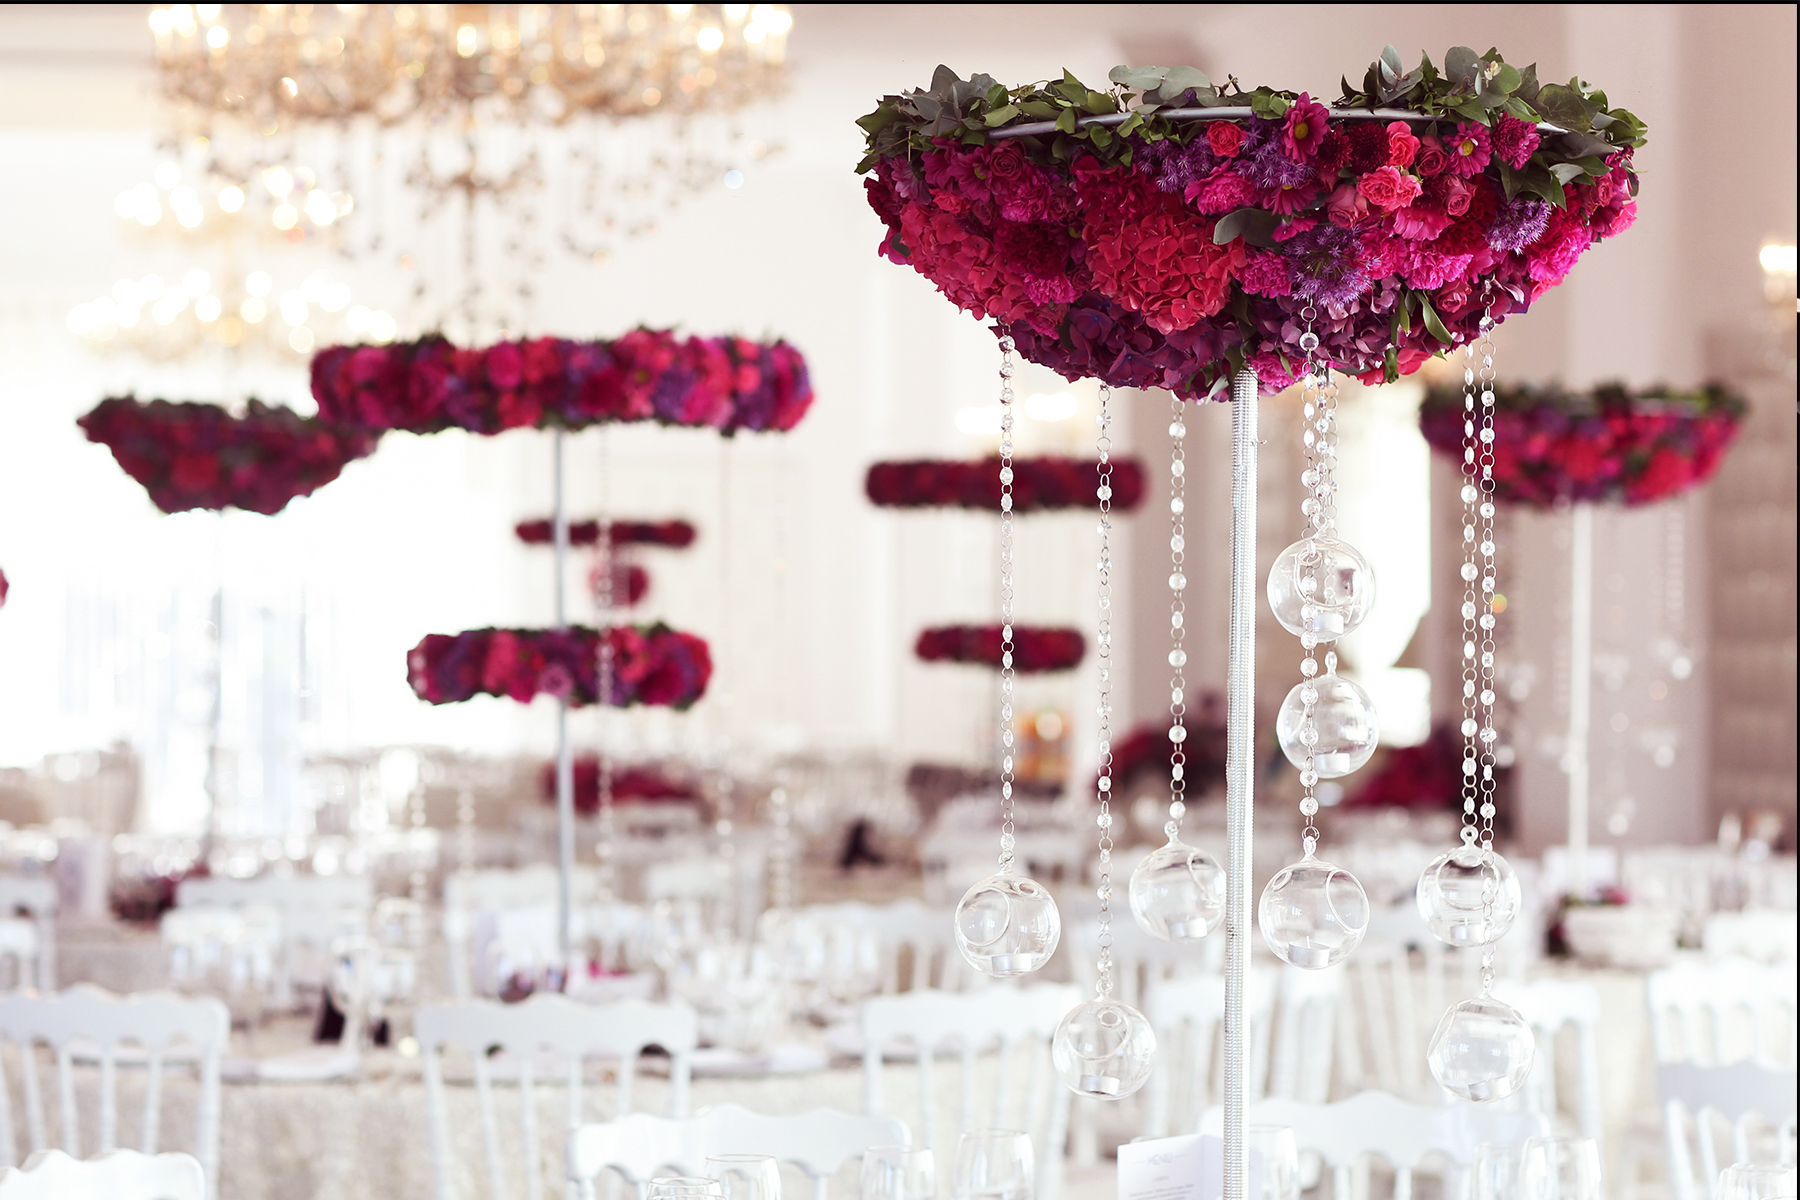 Alisons Events are Unique and Personalized for Every Occasion!